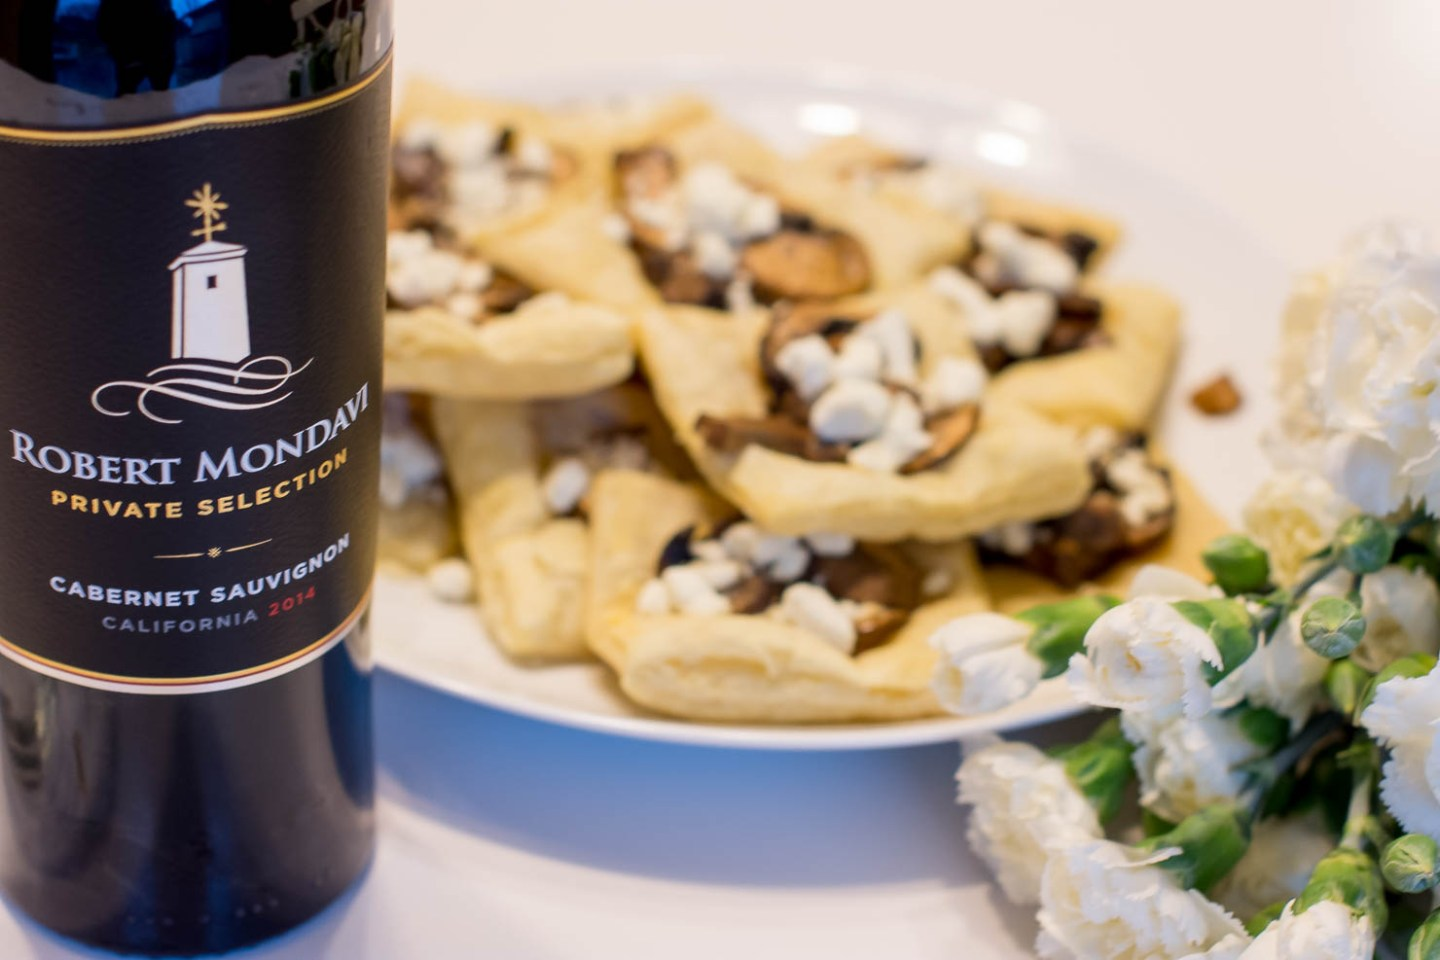 Robert-Mondavi-private-selection-easy-mushroom-and-goat-cheese-tarts-3-ingredient-turkey-meatballs